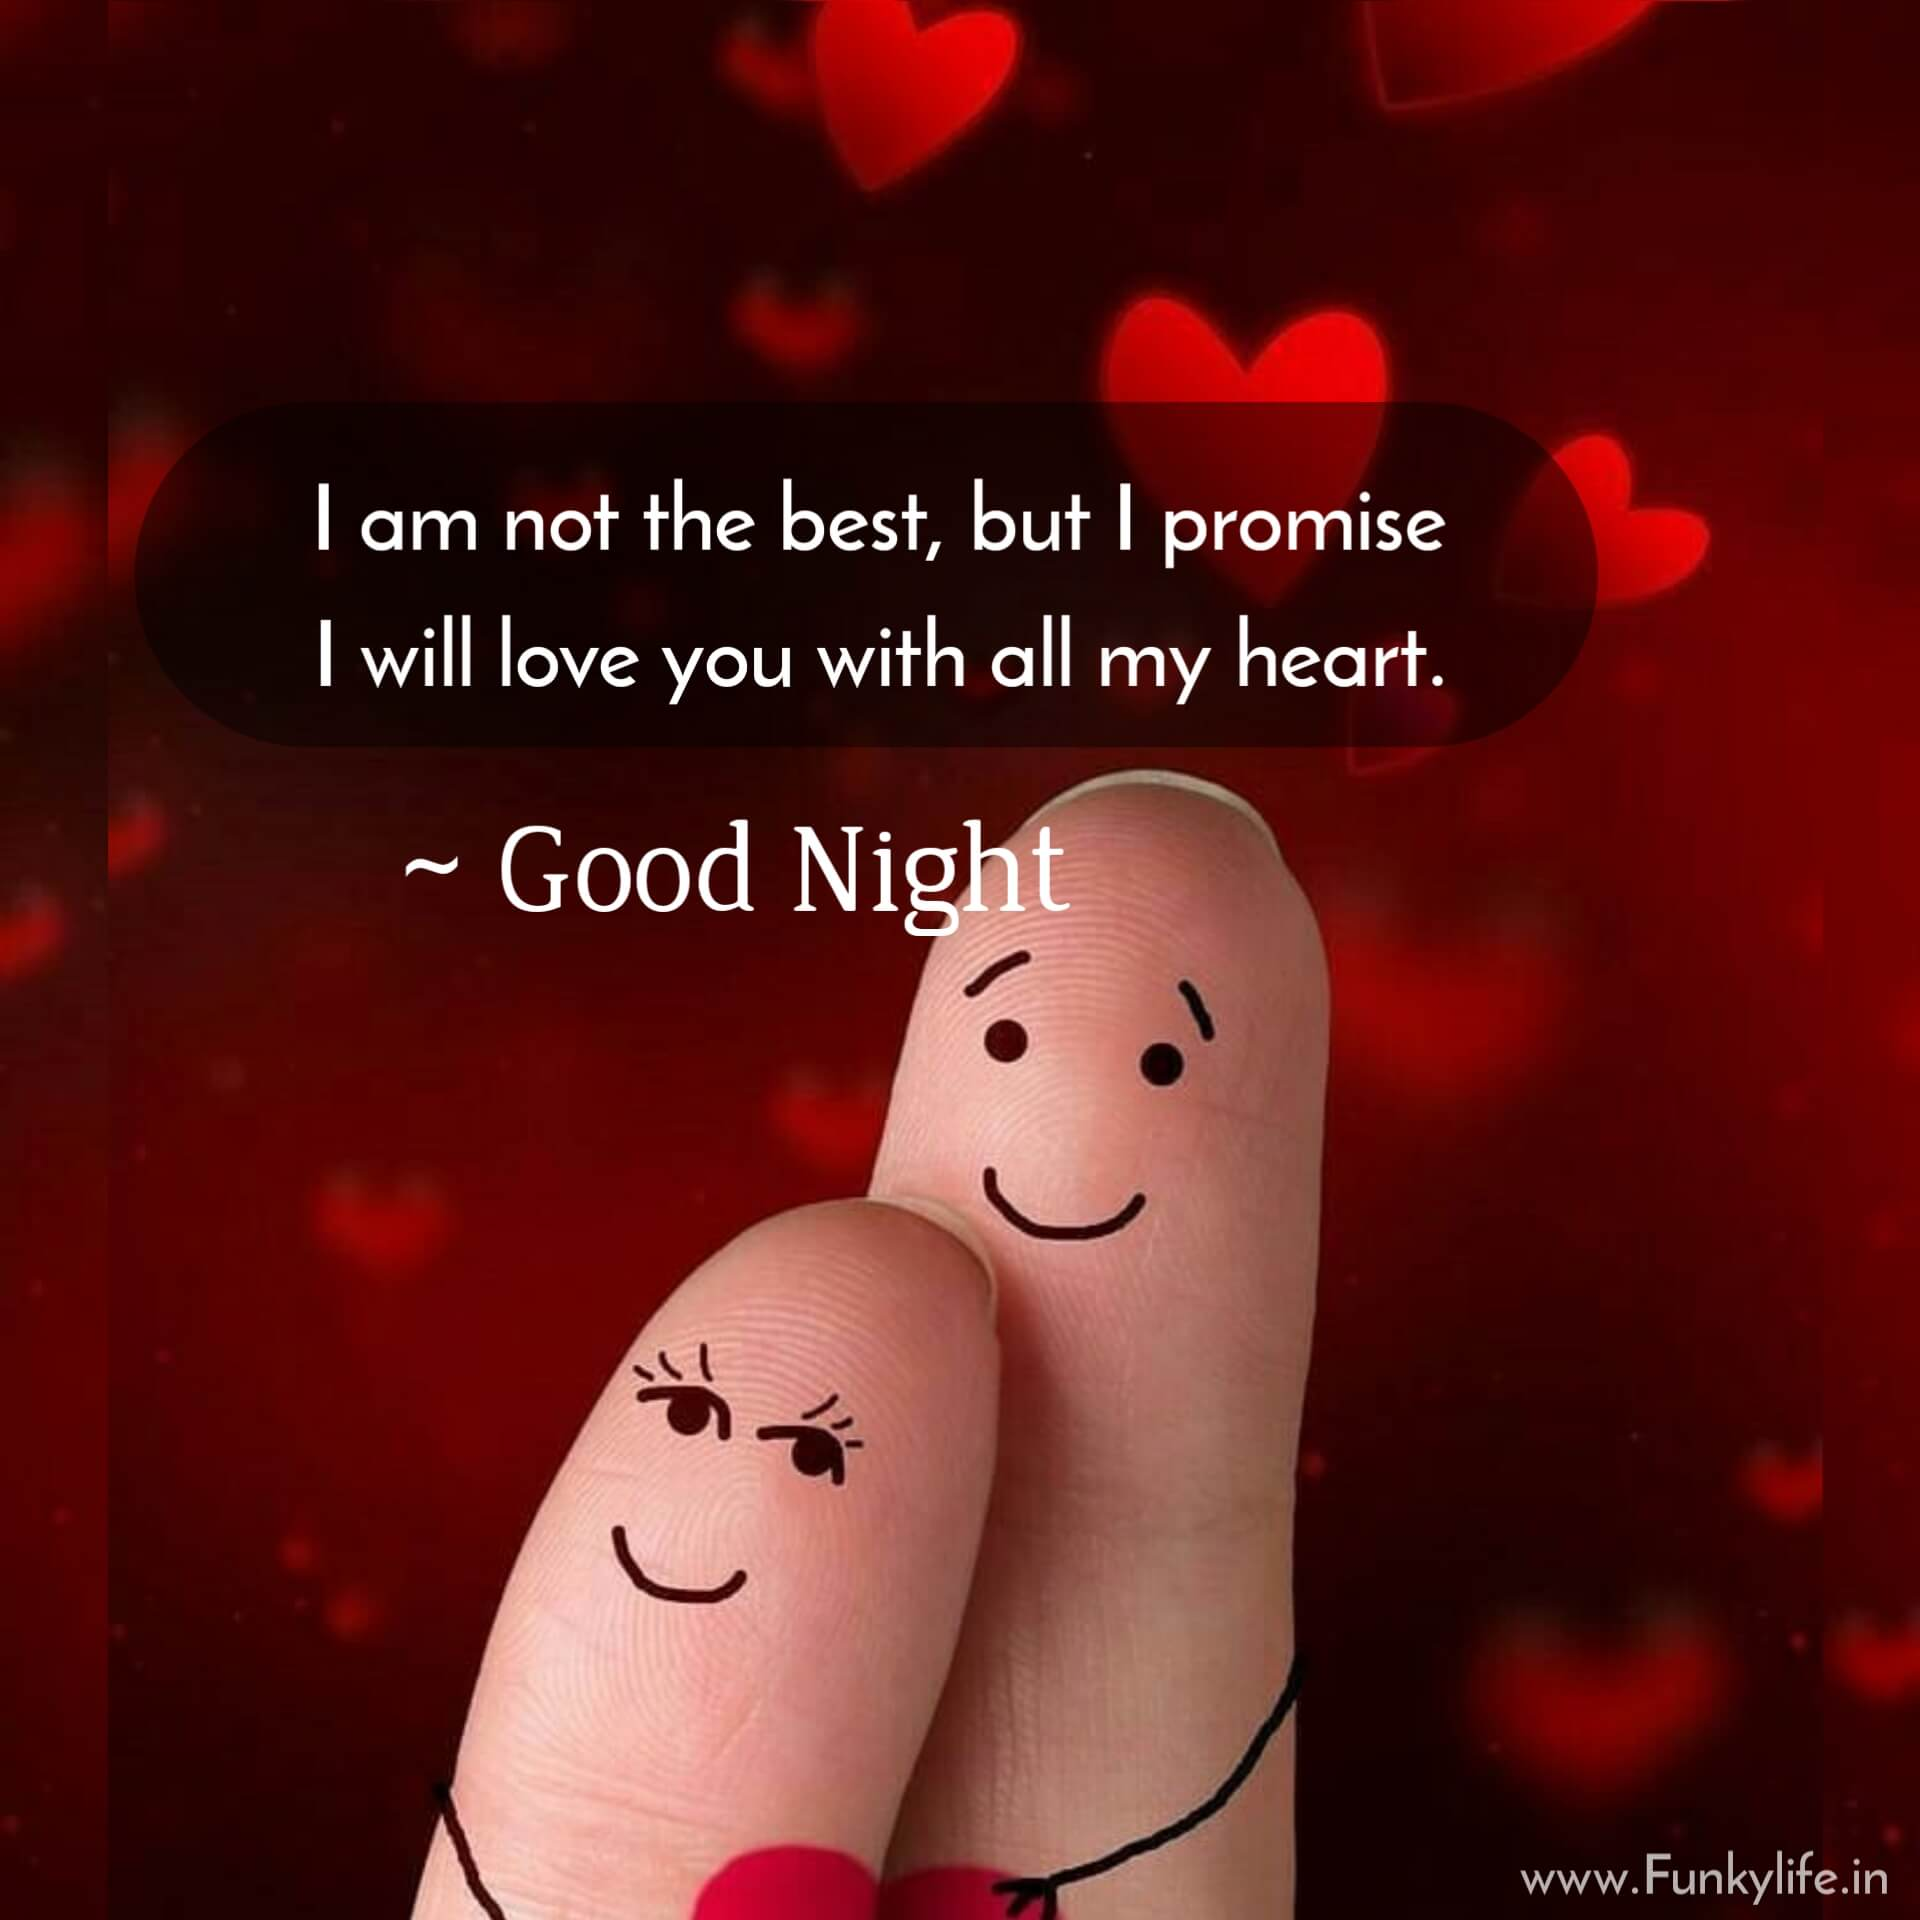 Good Night Quotes for Love with Images